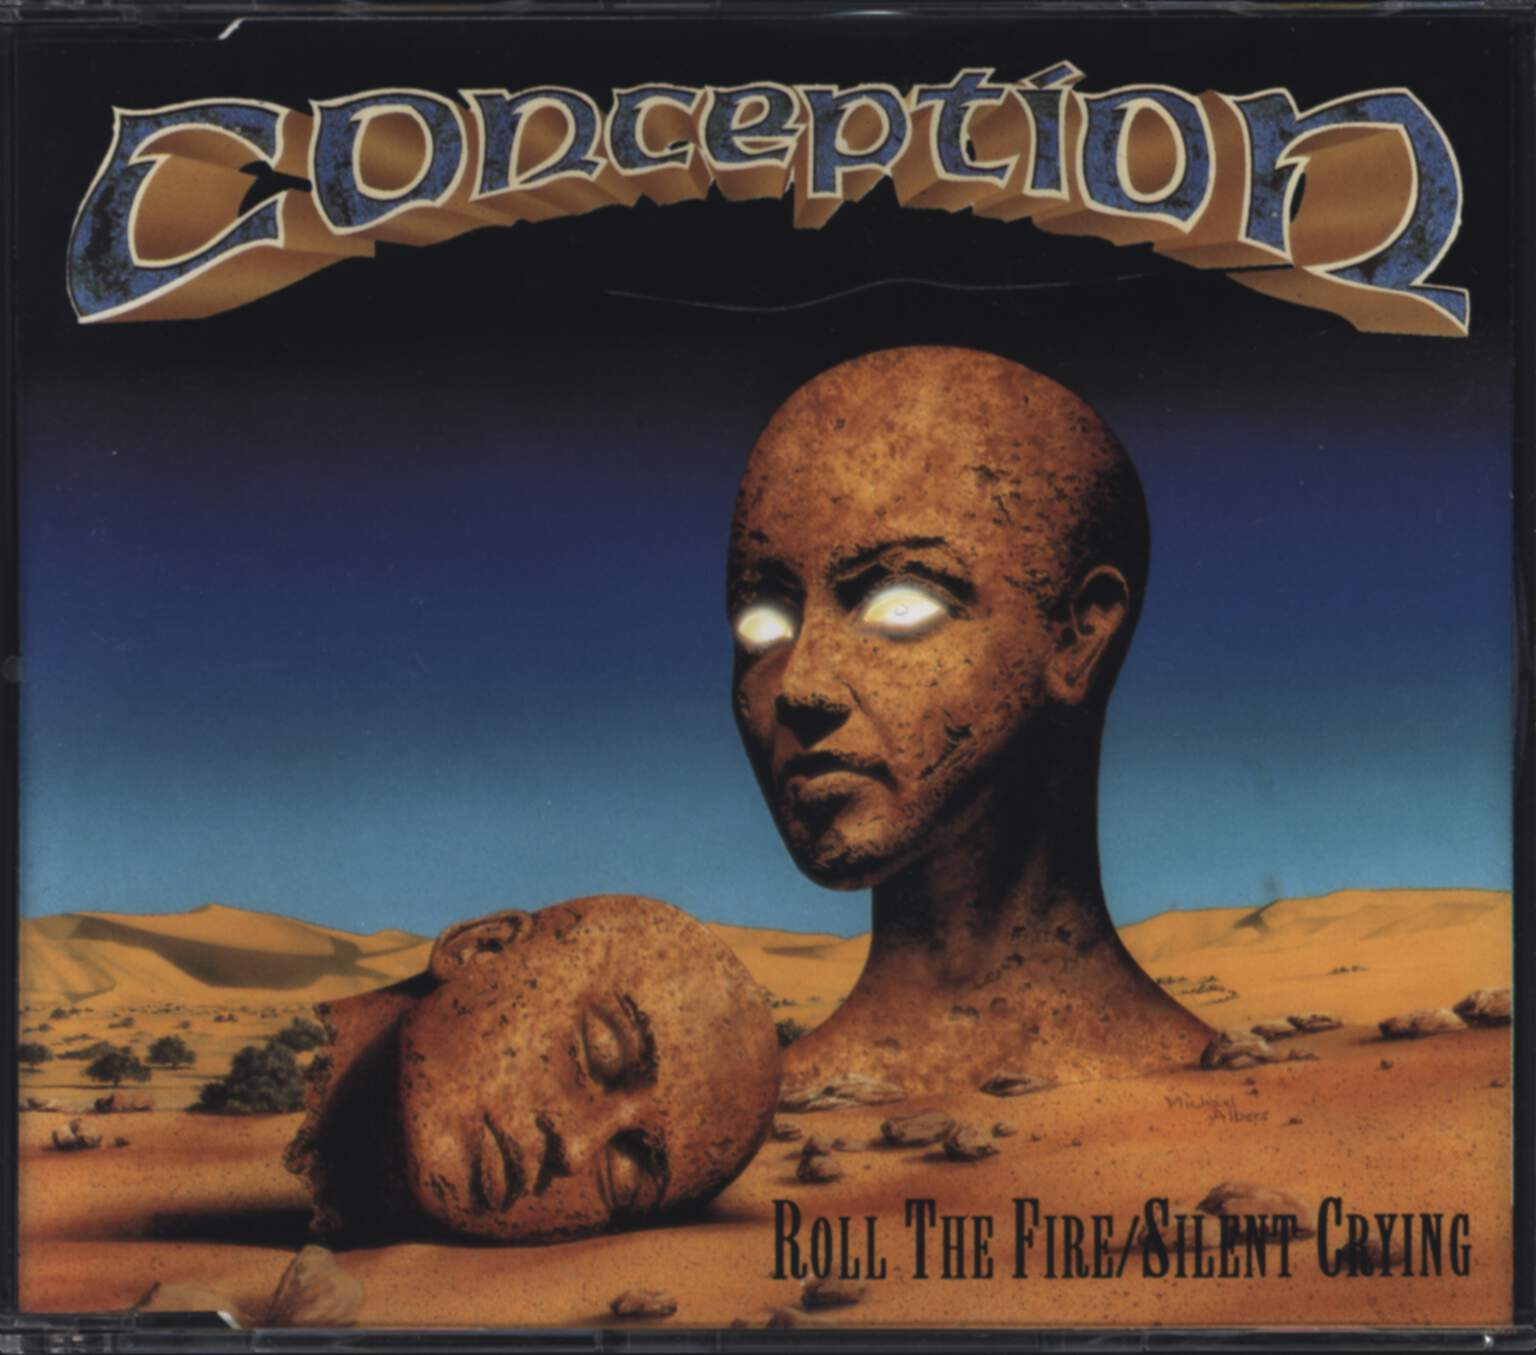 Conception: Roll The Fire, Mini CD